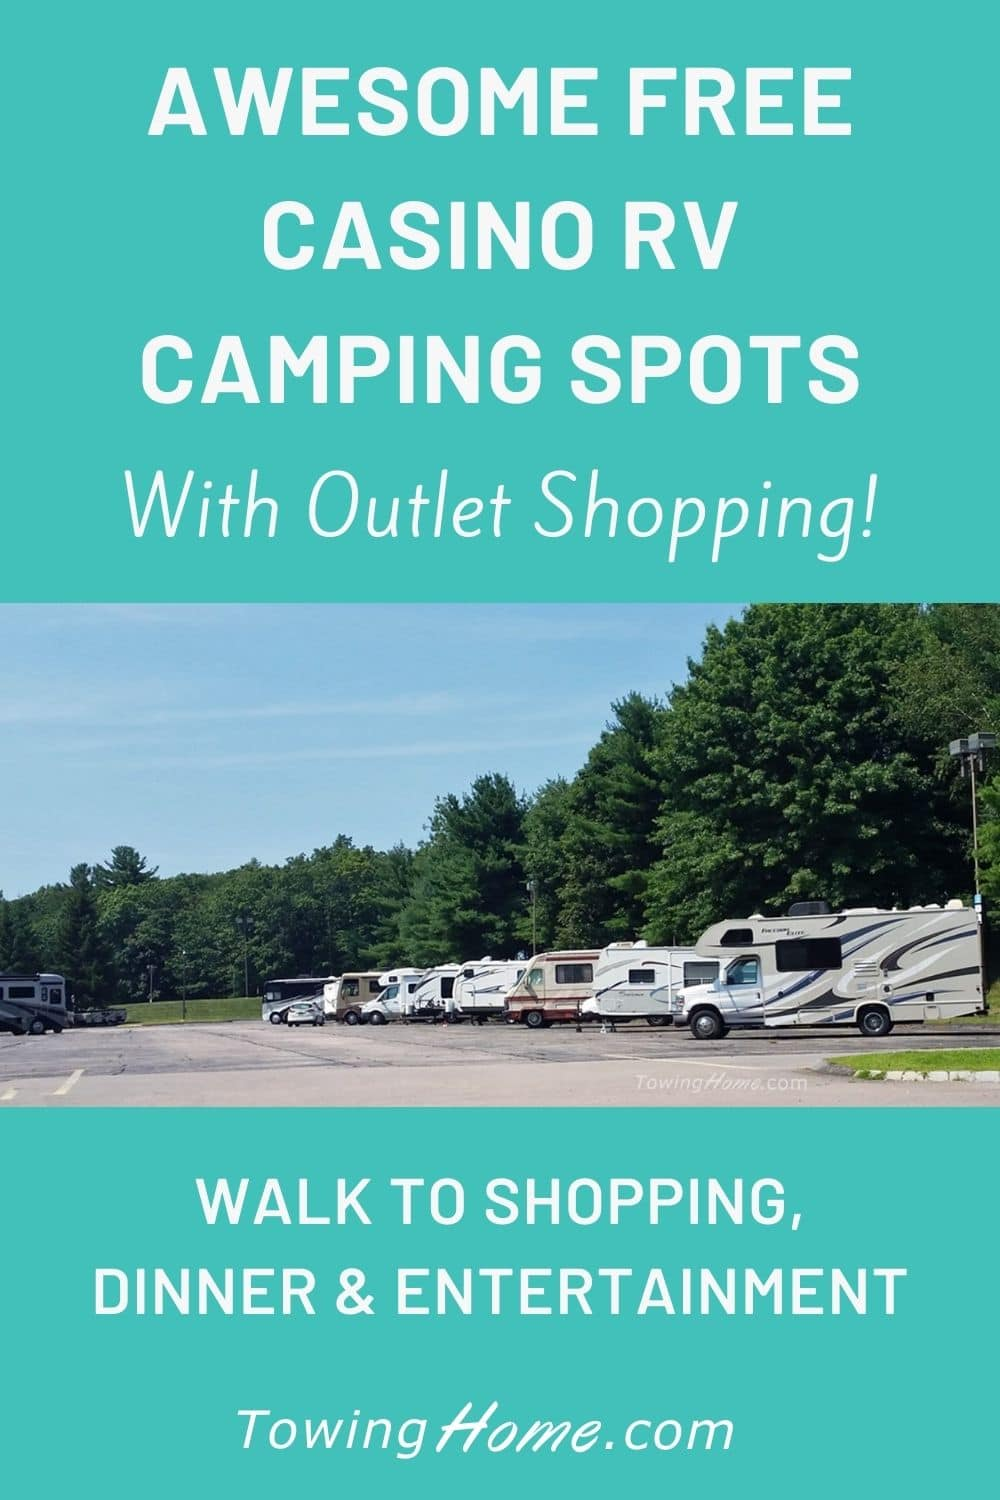 Free Casino RV Camping With Outlet Shopping Onsite